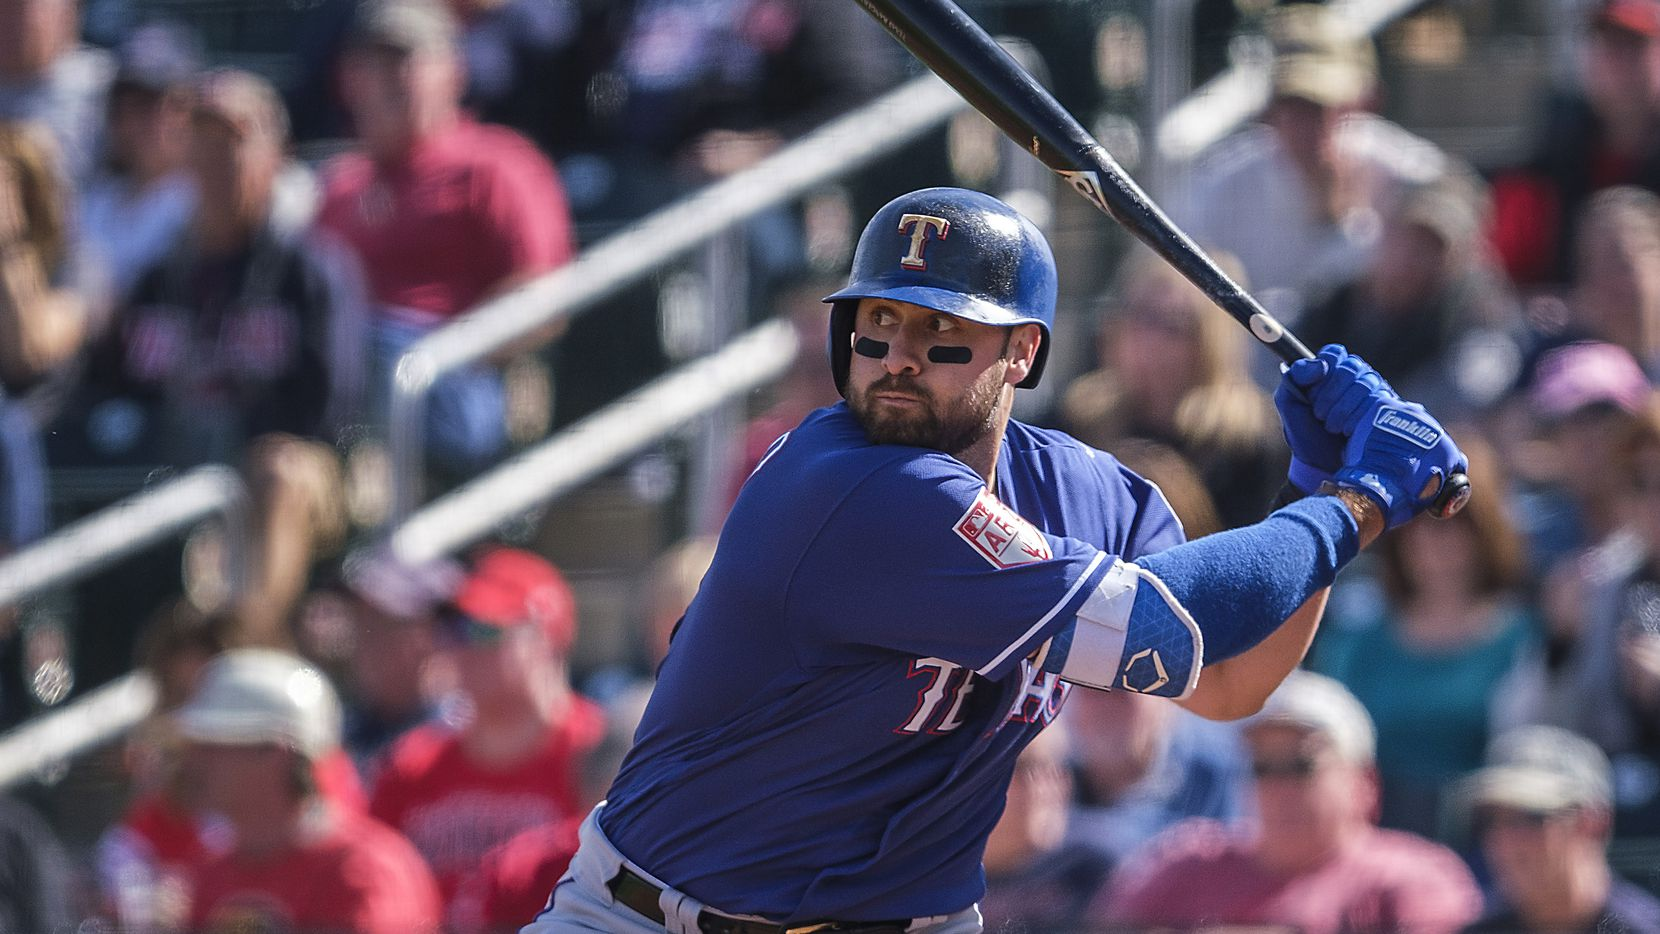 Joey Gallo has the potential to be a two-way star and the Rangers are 'pushing him to be that'